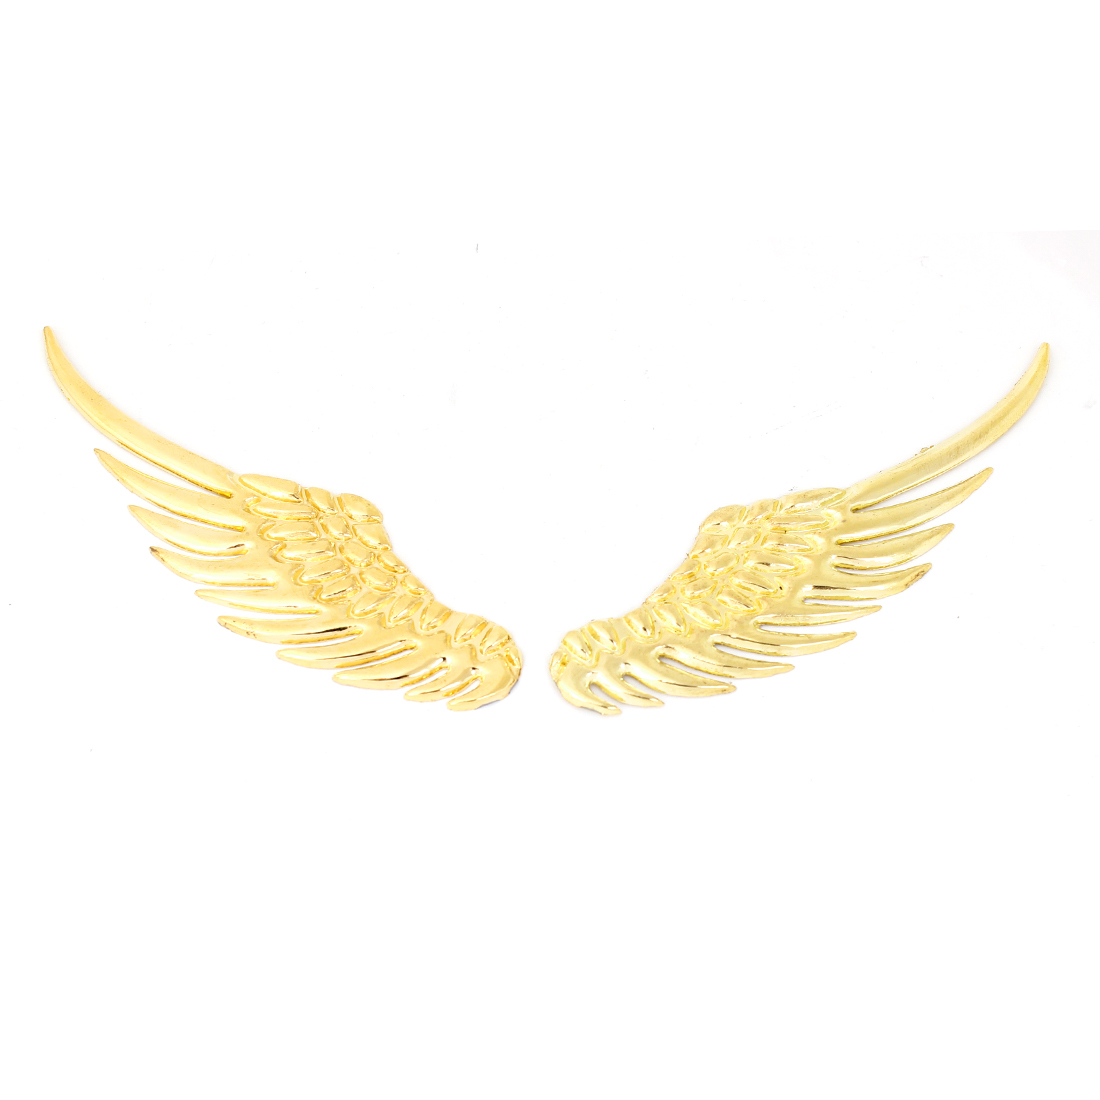 2PCS Gold Tone Metal 3D Wings Shaped Sticker Decal Badge for Auto